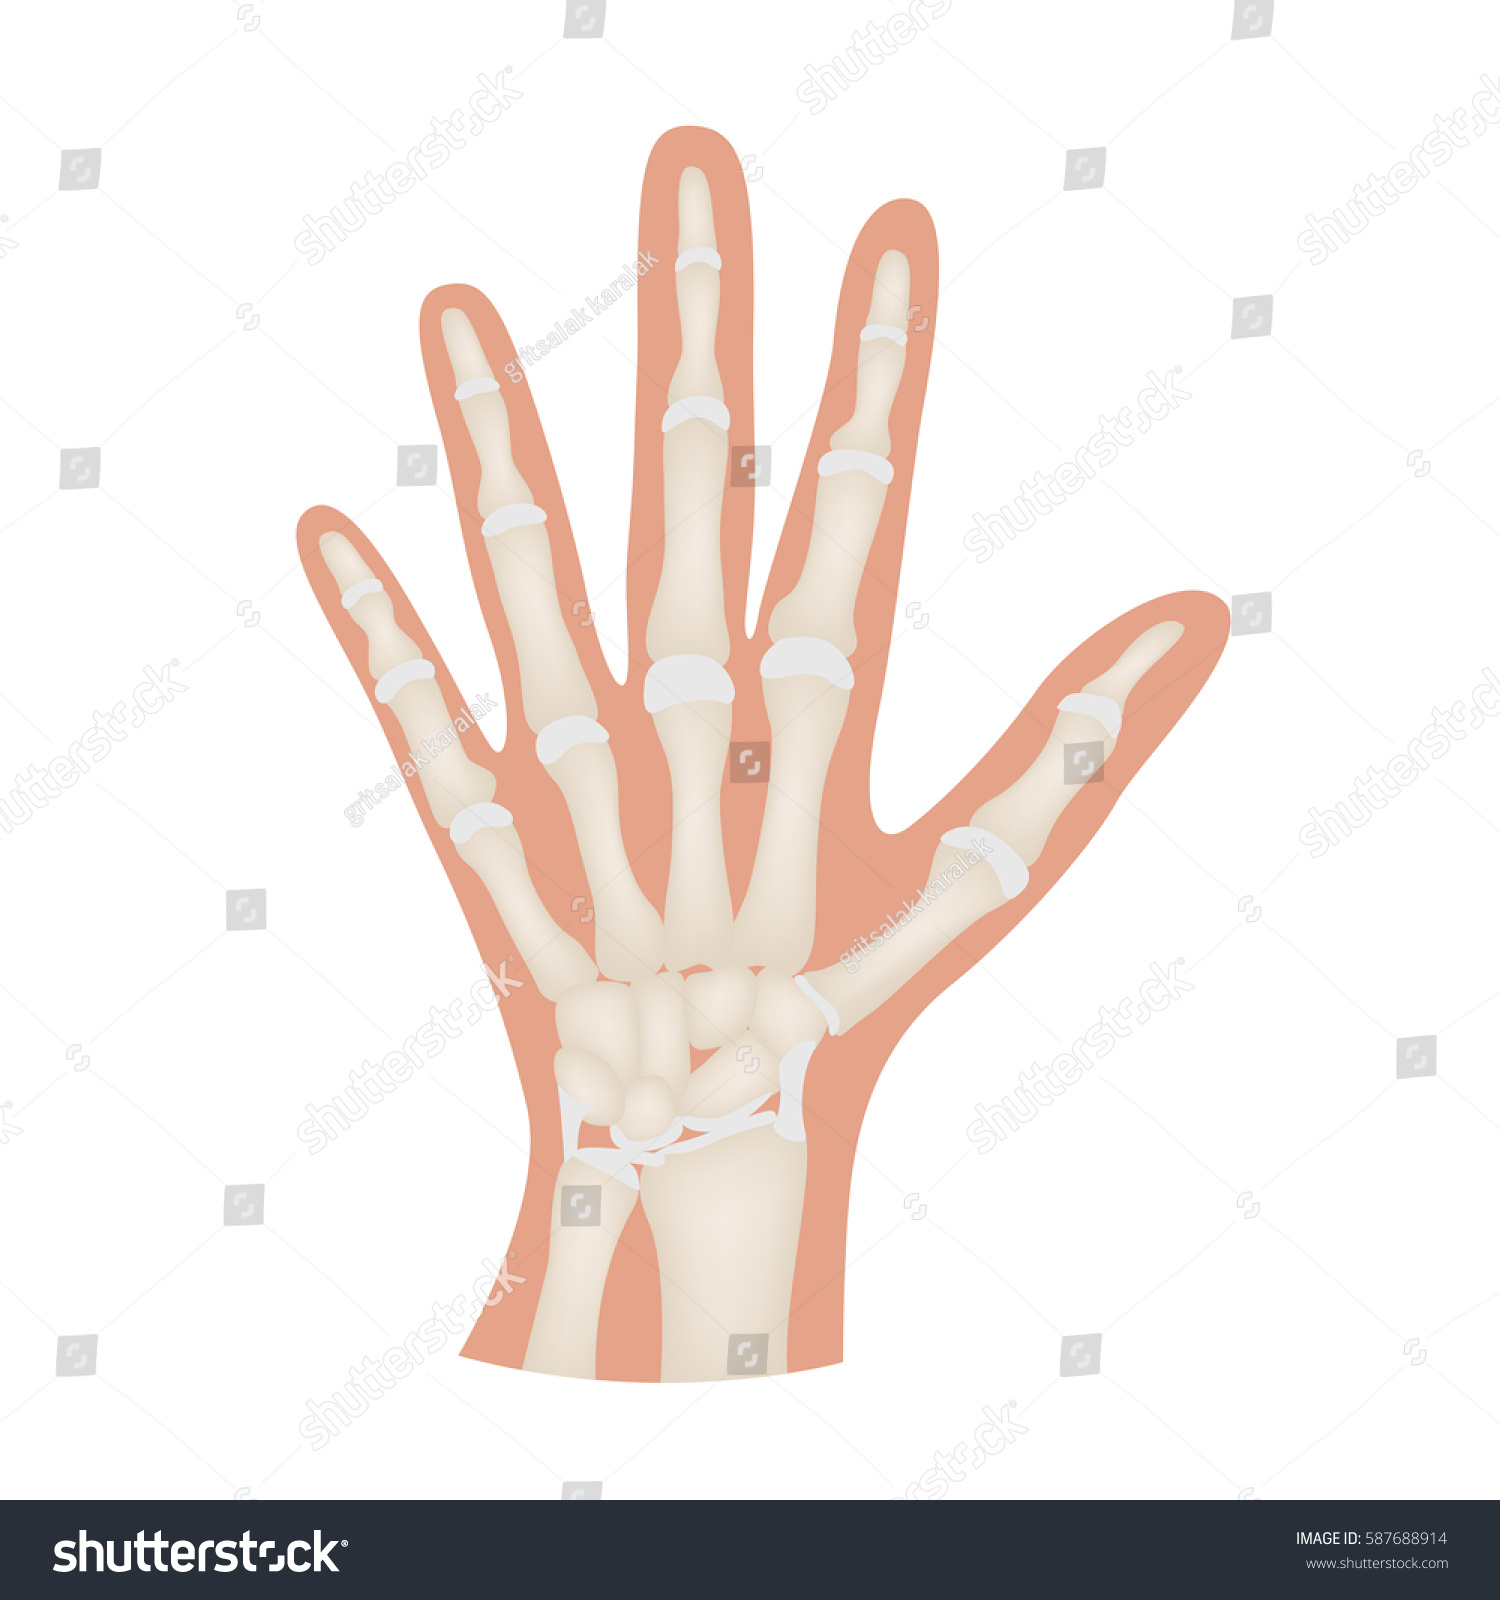 Hand Bone Anatomy Vector Stock Vector (Royalty Free) 587688914 ...